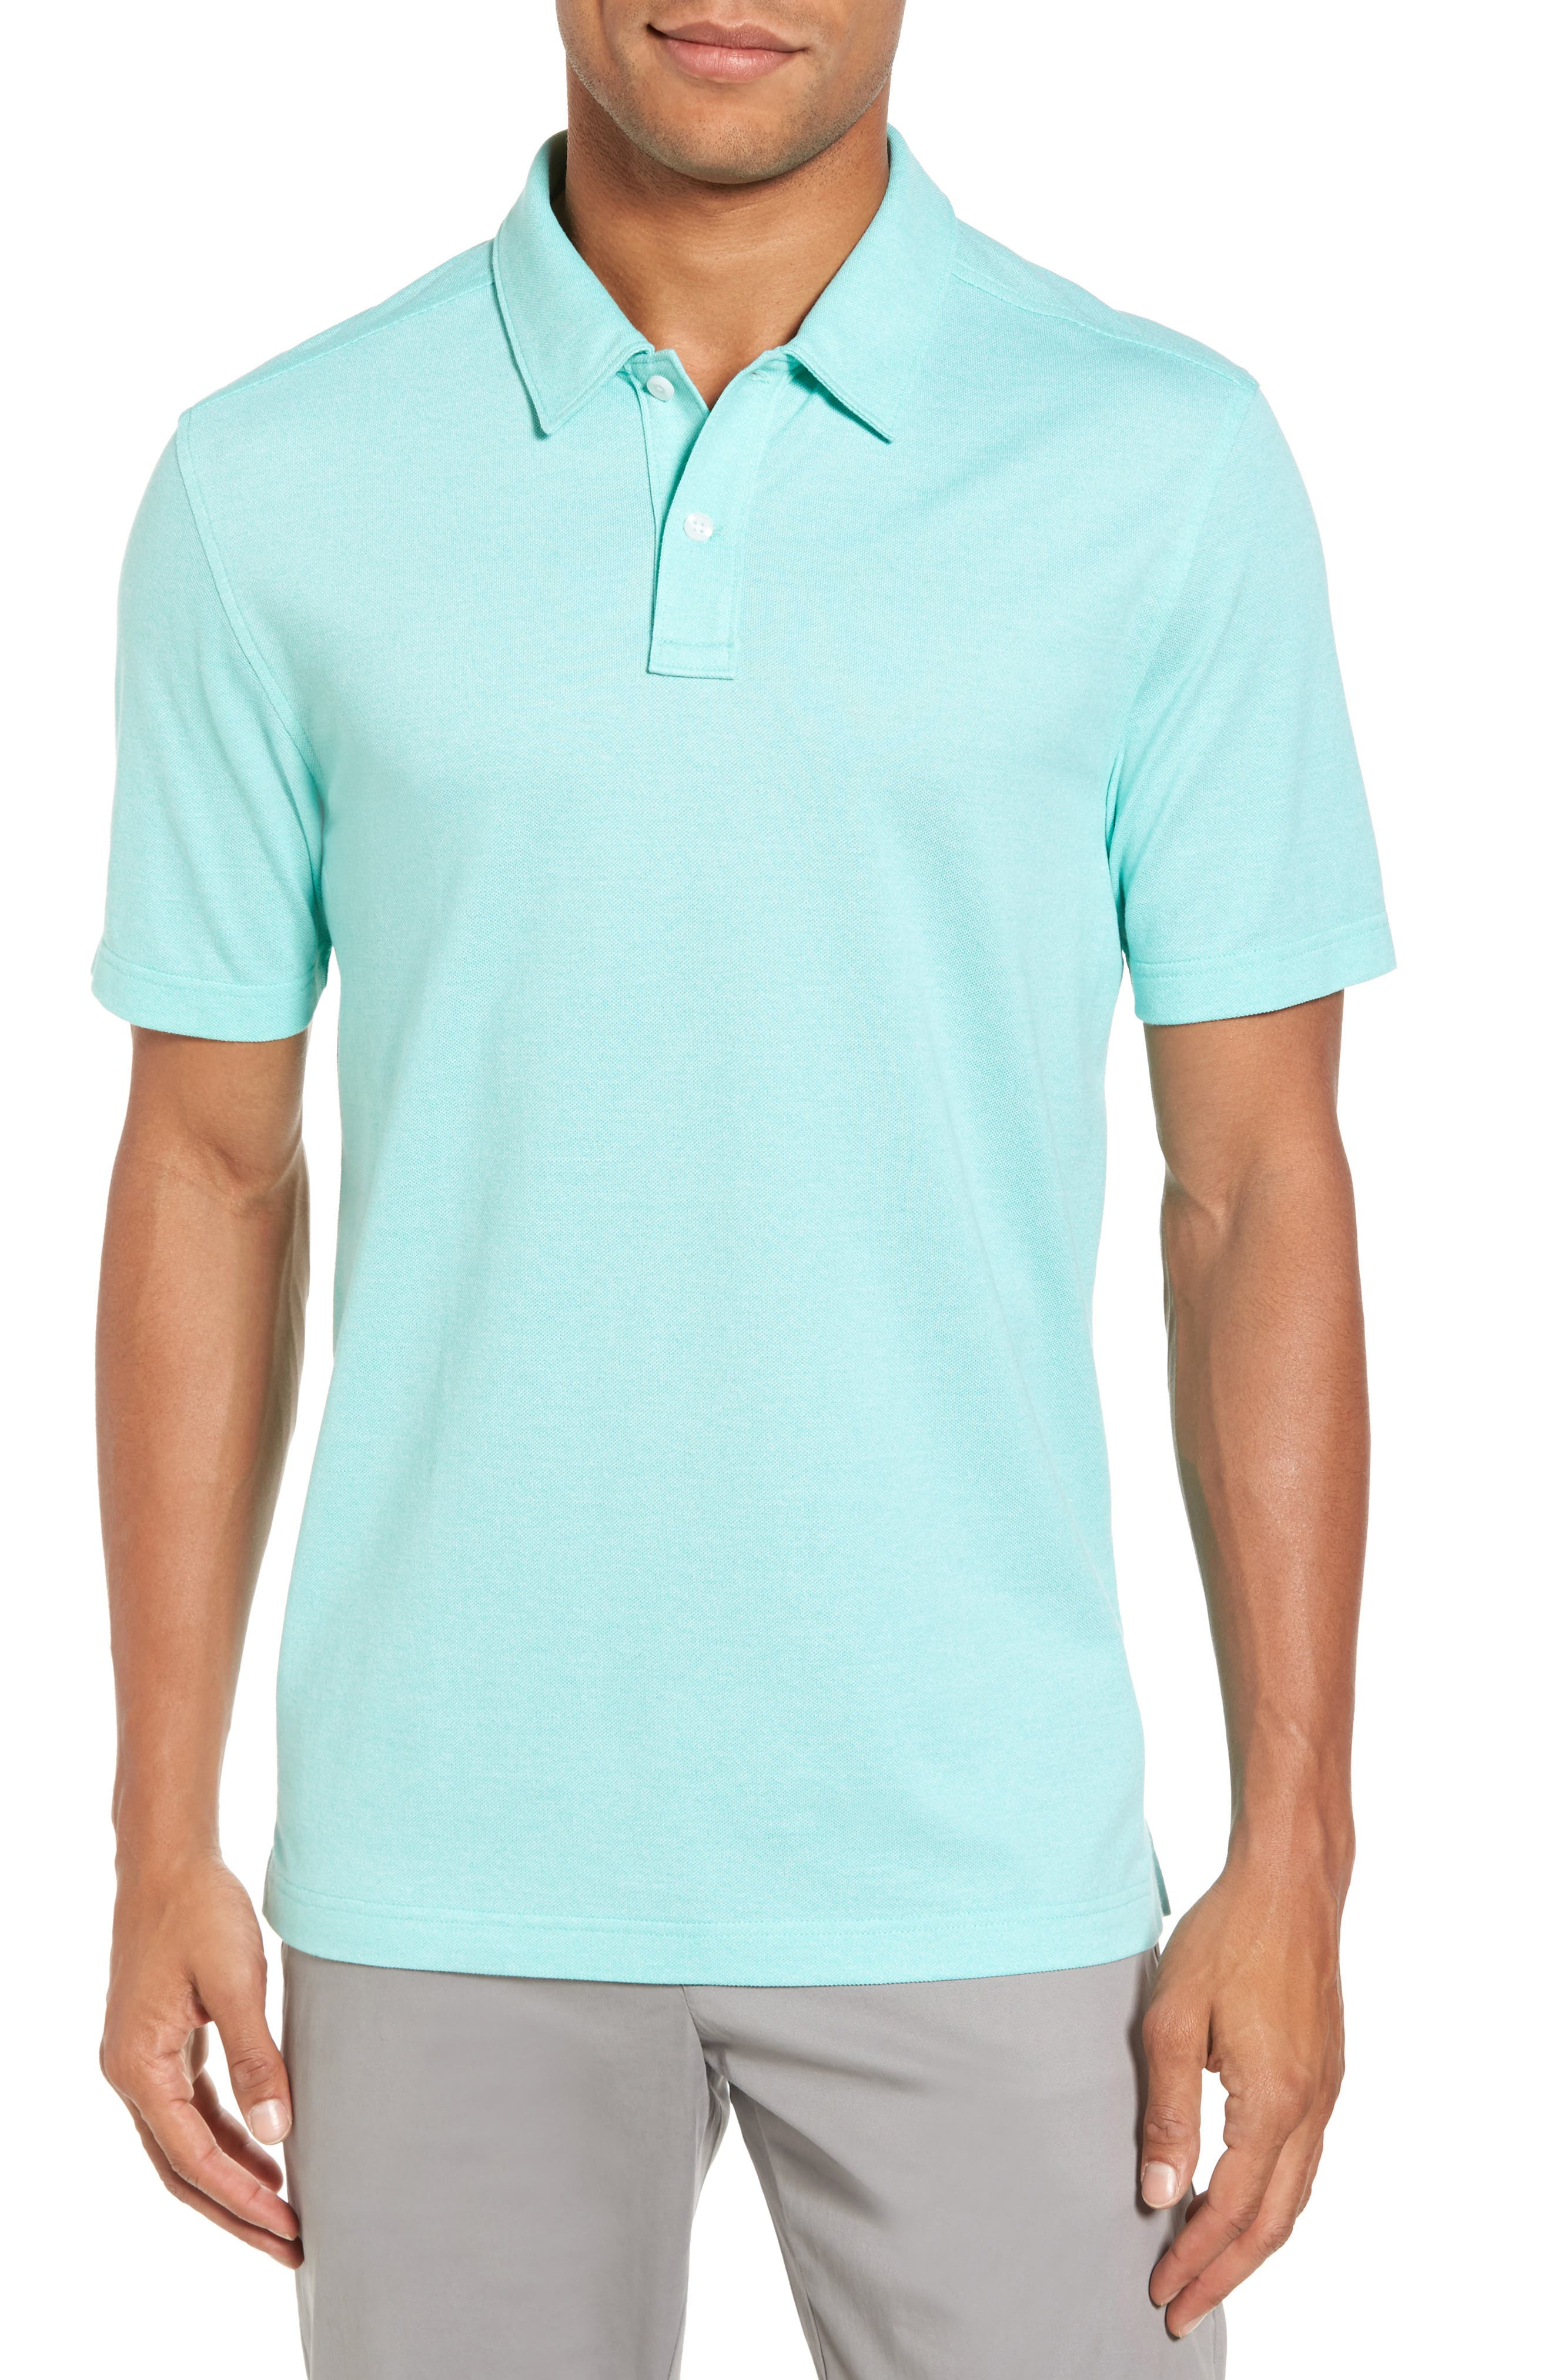 Regular Fit Polo,                         Main,                         color, TEAL GLOSS